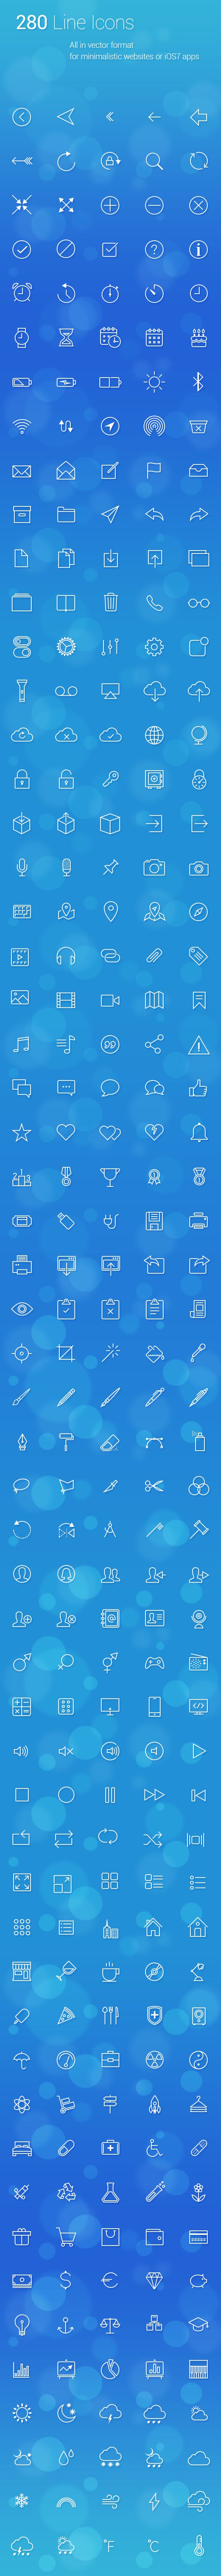 Get 280 uniquely designed vector line icons for your personal/commercial projects, apps, websites, prints and more. Looks great with the new iOS 7 design! Scale or edit icons without losing quality using the vector source files. Every icon is also provided in pixel format ready to drop directly into Xcode at both standard 1x and retina 2x sizes.   Download: https://gum.co/orbG